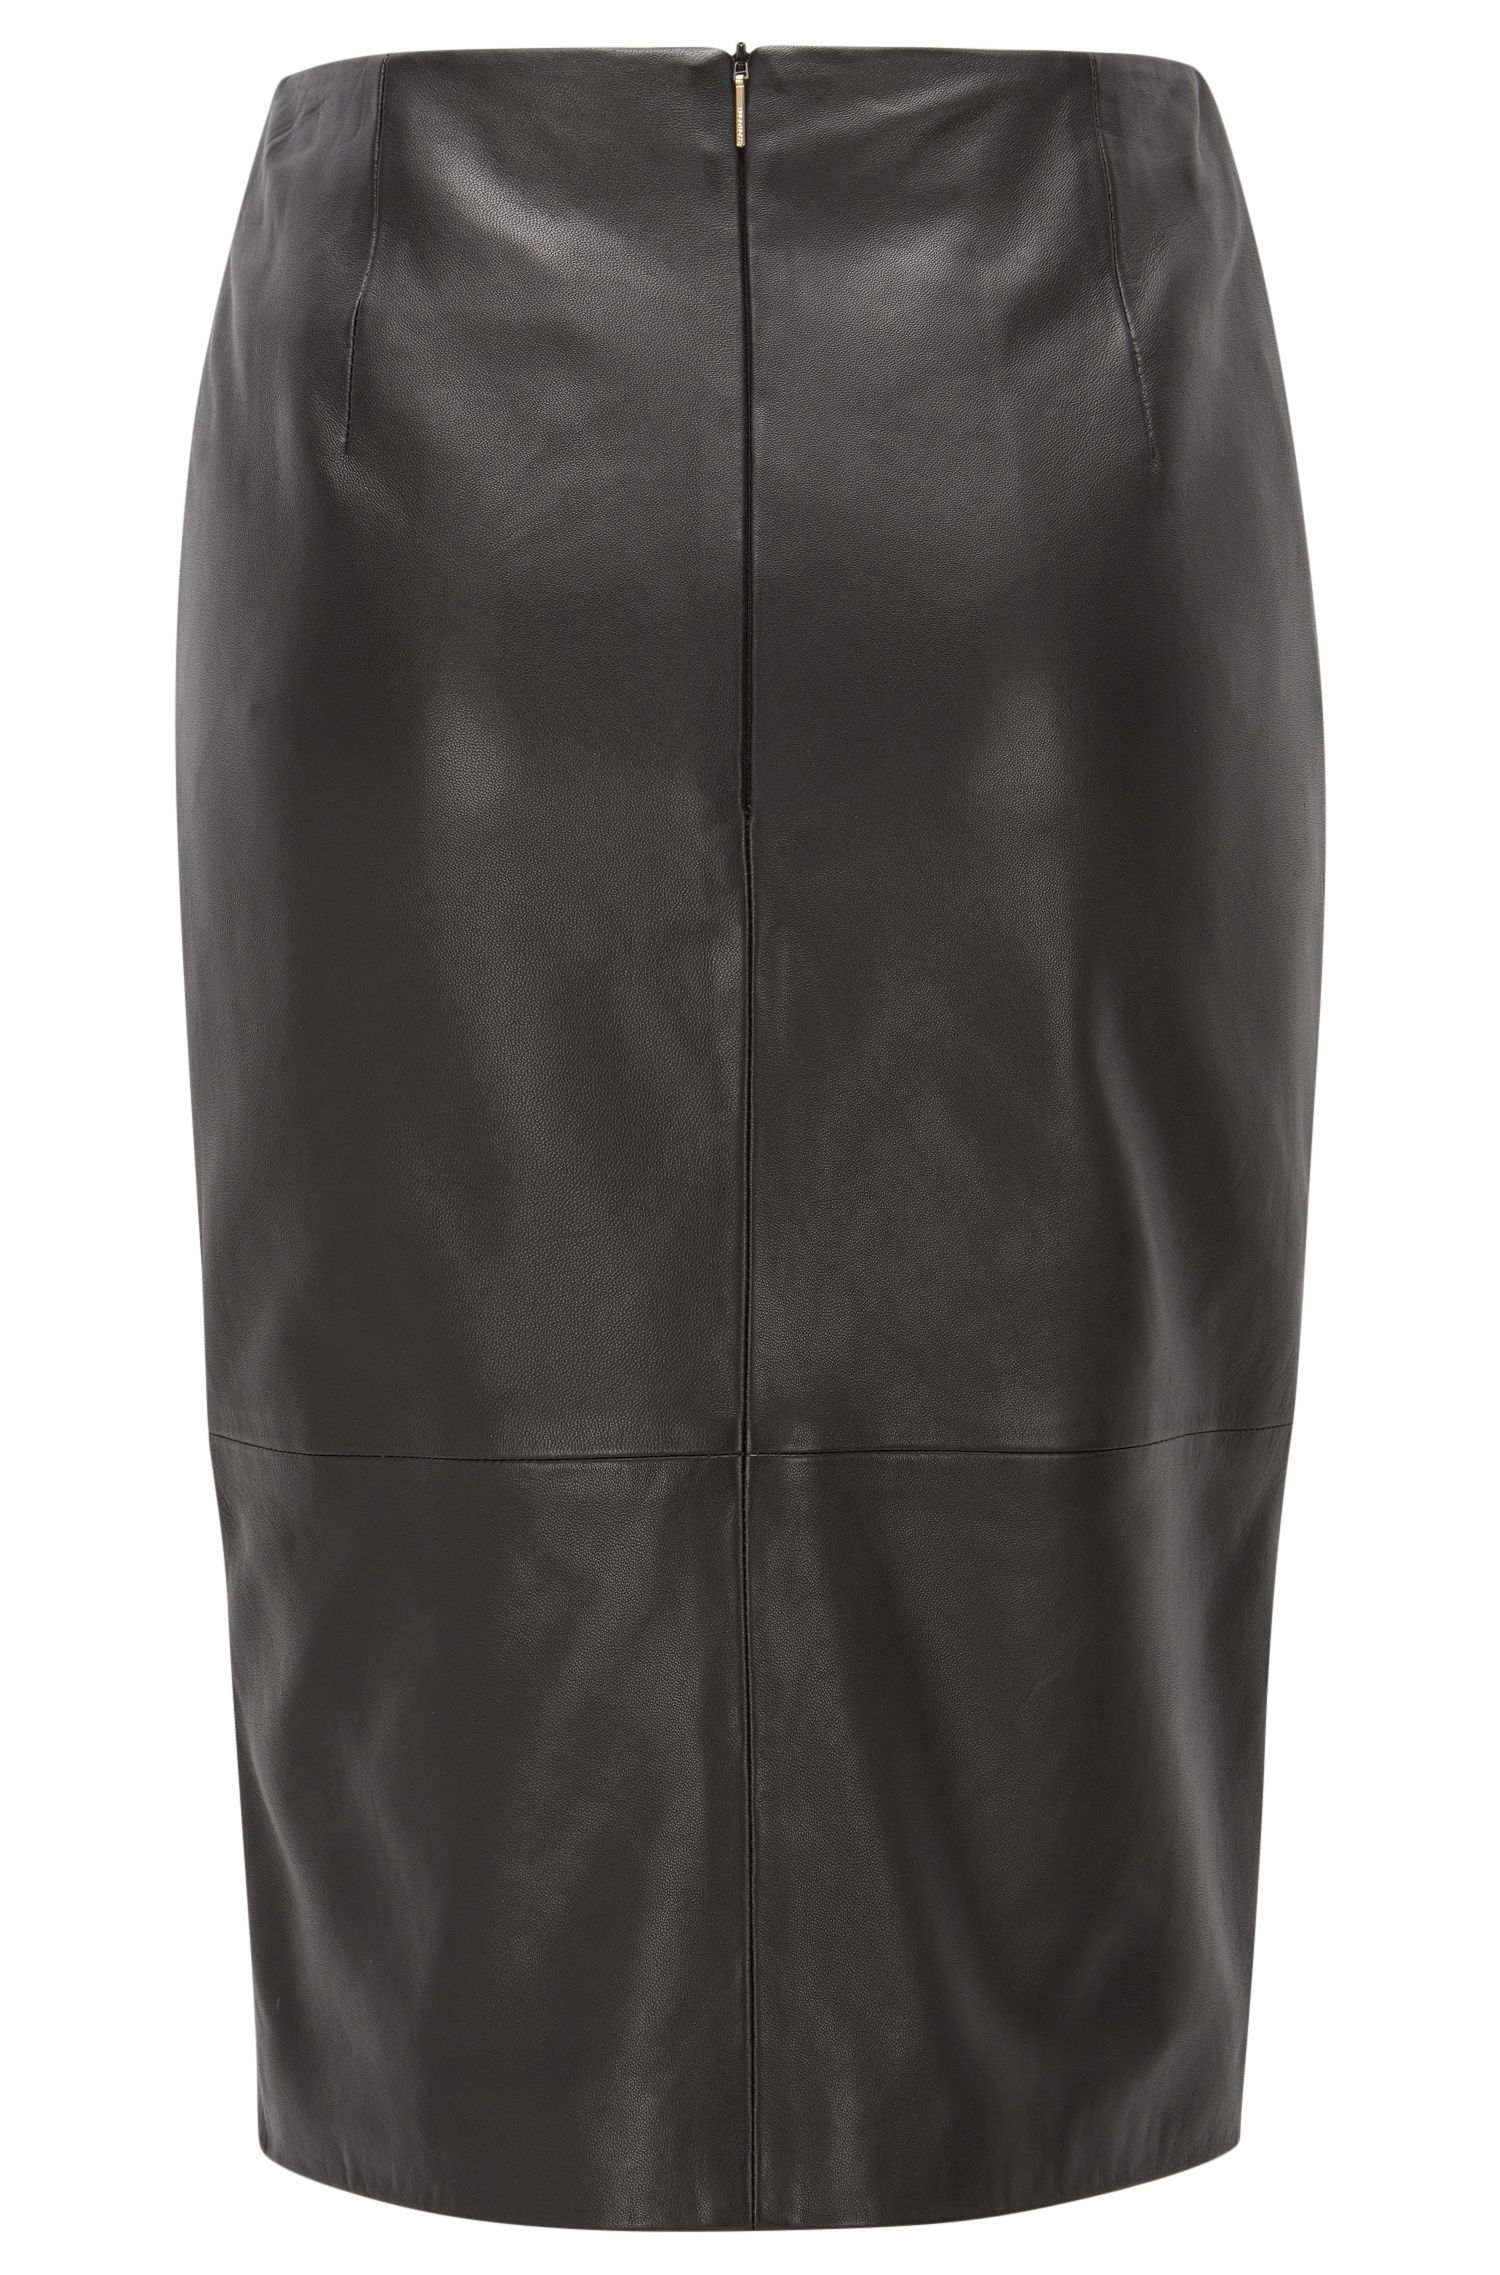 Leather Pencil Skirt | Sepama, Black